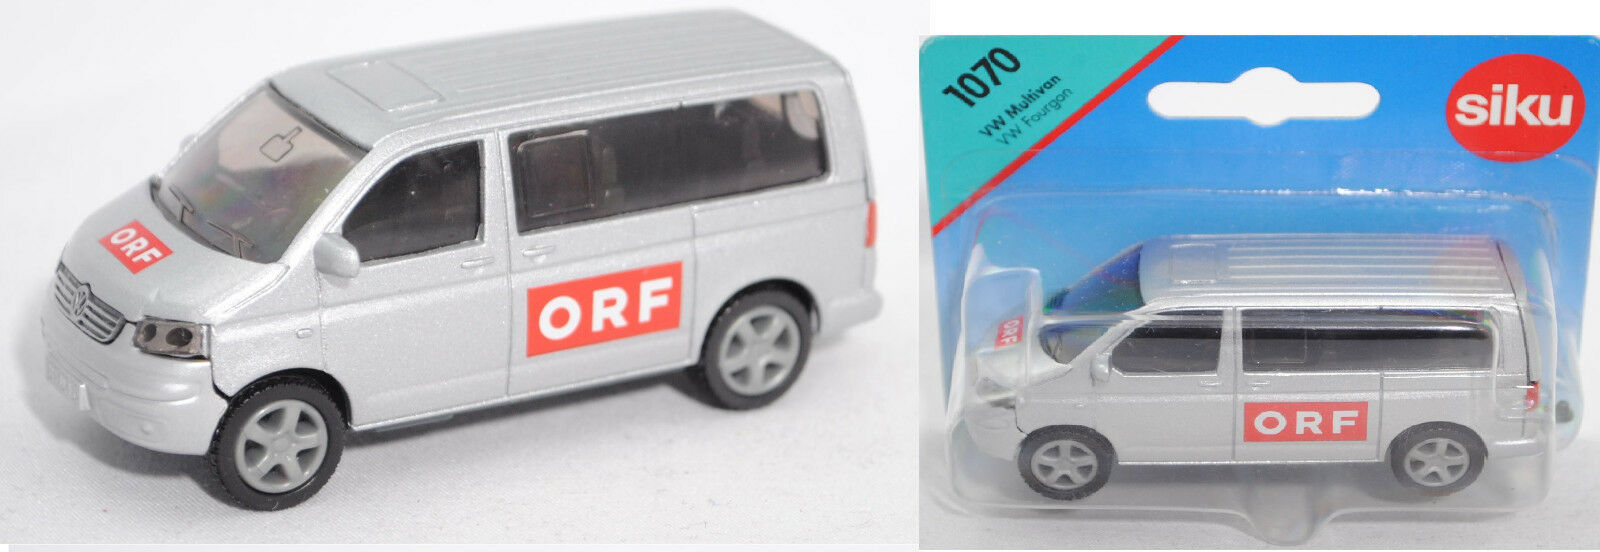 SIKU SUPER 1070 Vw t5 multivan, Orf